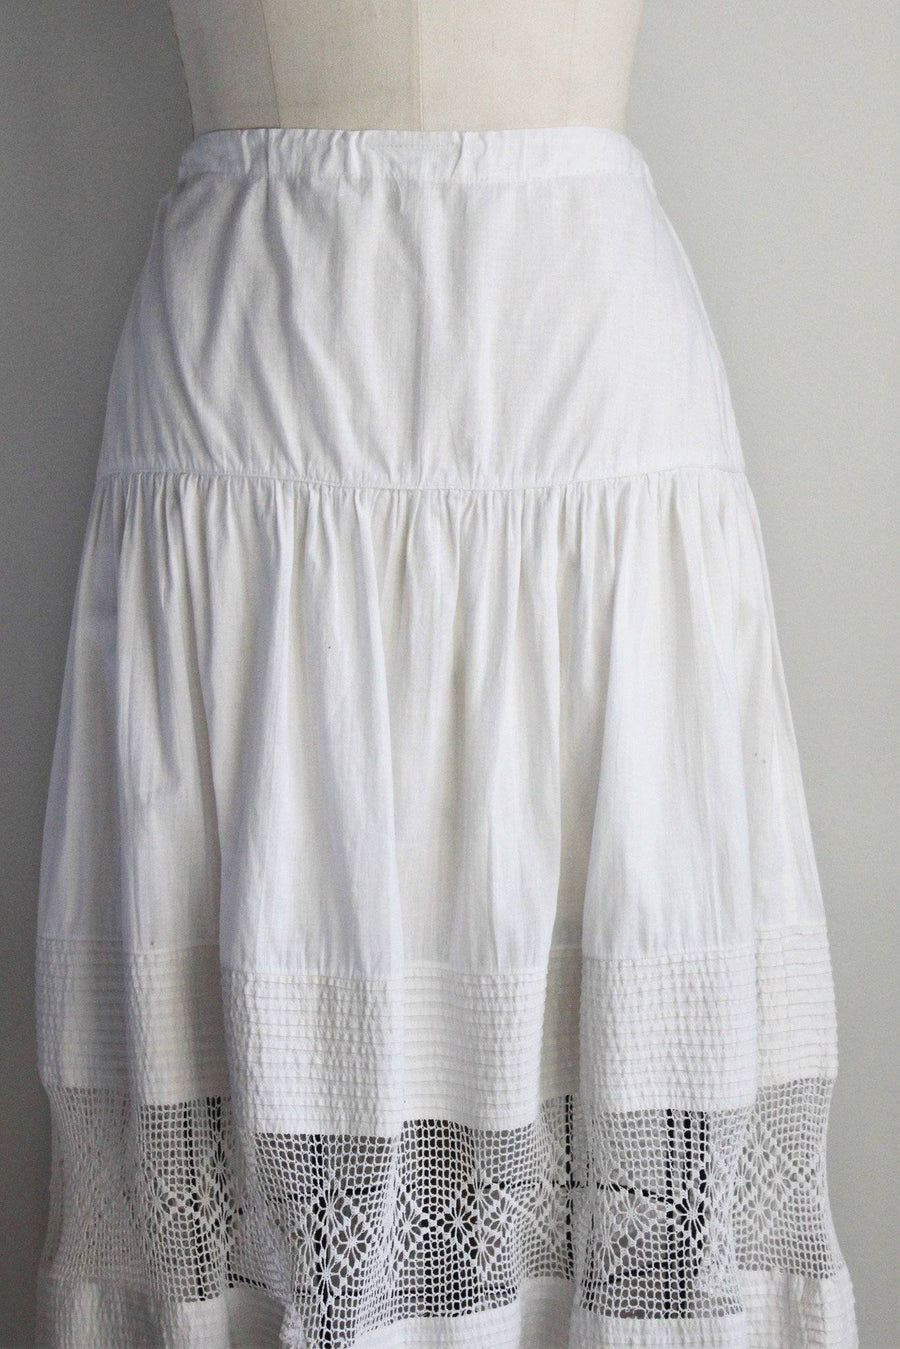 Beautiful white cotton Victorian/Edwardian petticoat. Loose Crochet scalloped edge hem with pintuck ruffles in a two layers. Drawstring waist so its really a flexible, comfortable fit. Would make a great boho skirt